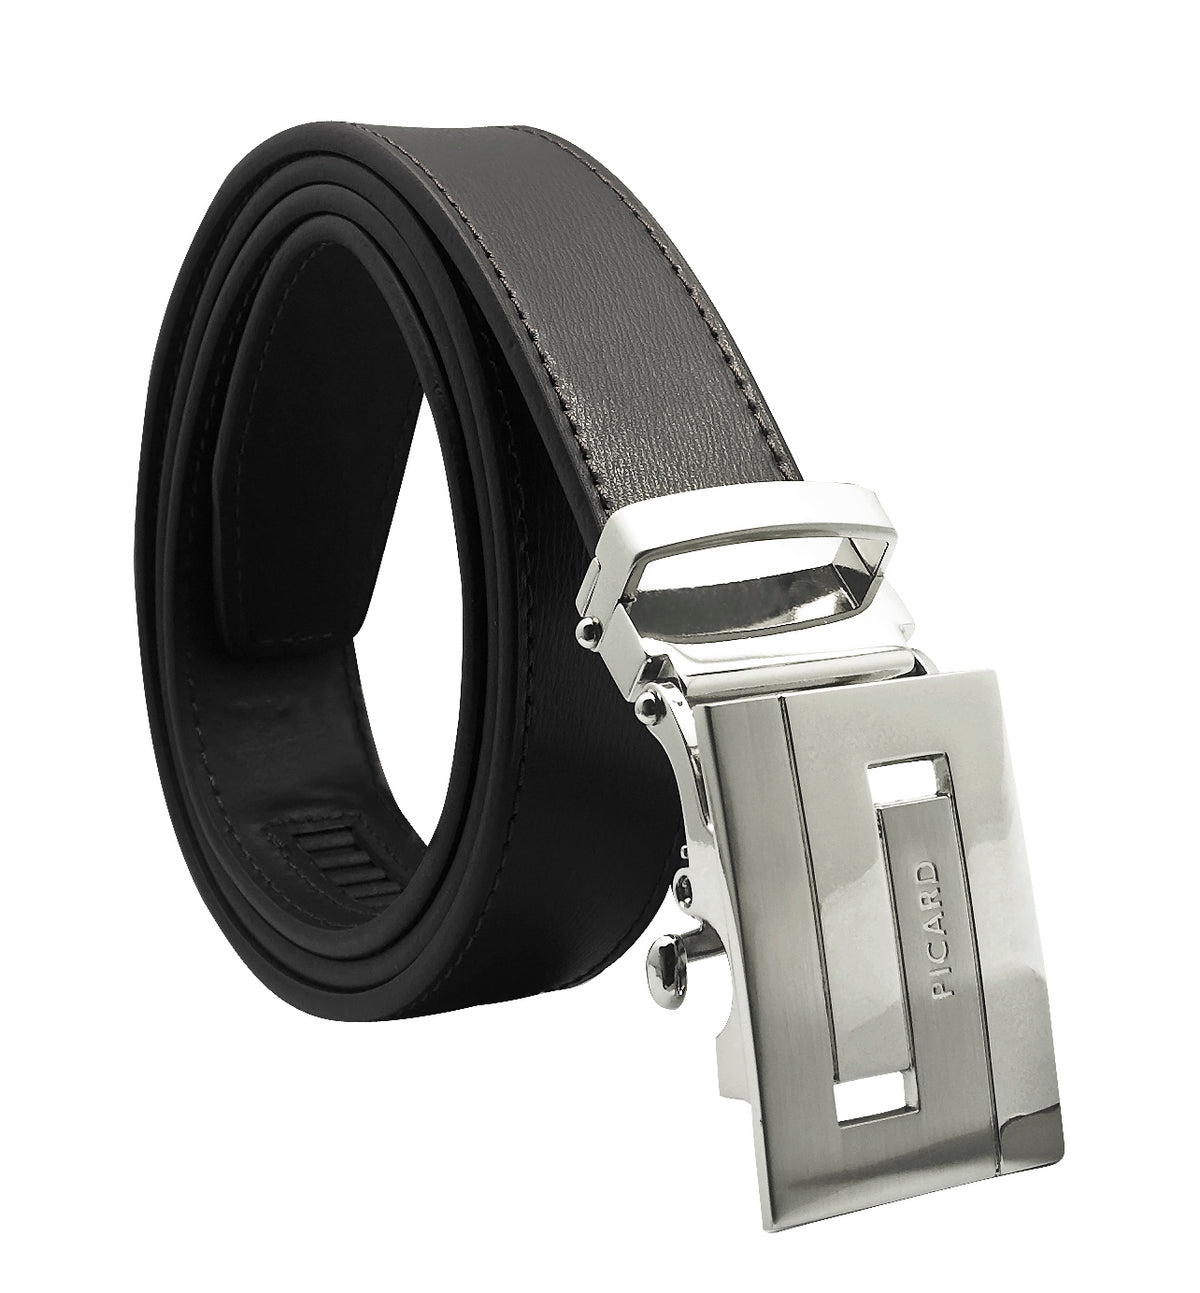 PICARD-OFFENBACH-BELT 30 MM AUTO LOCK